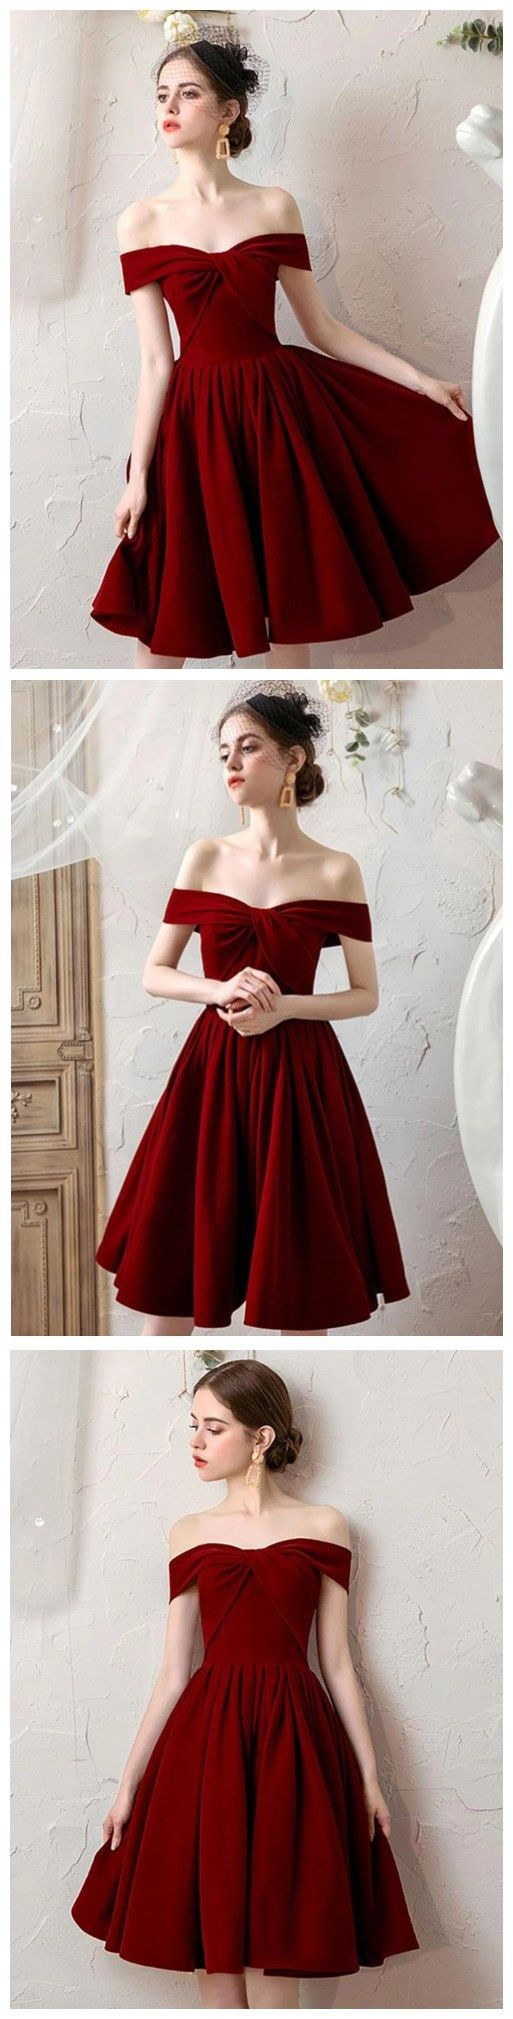 Red dresses ideas with bridal party dress, strapless dress, cocktail dress